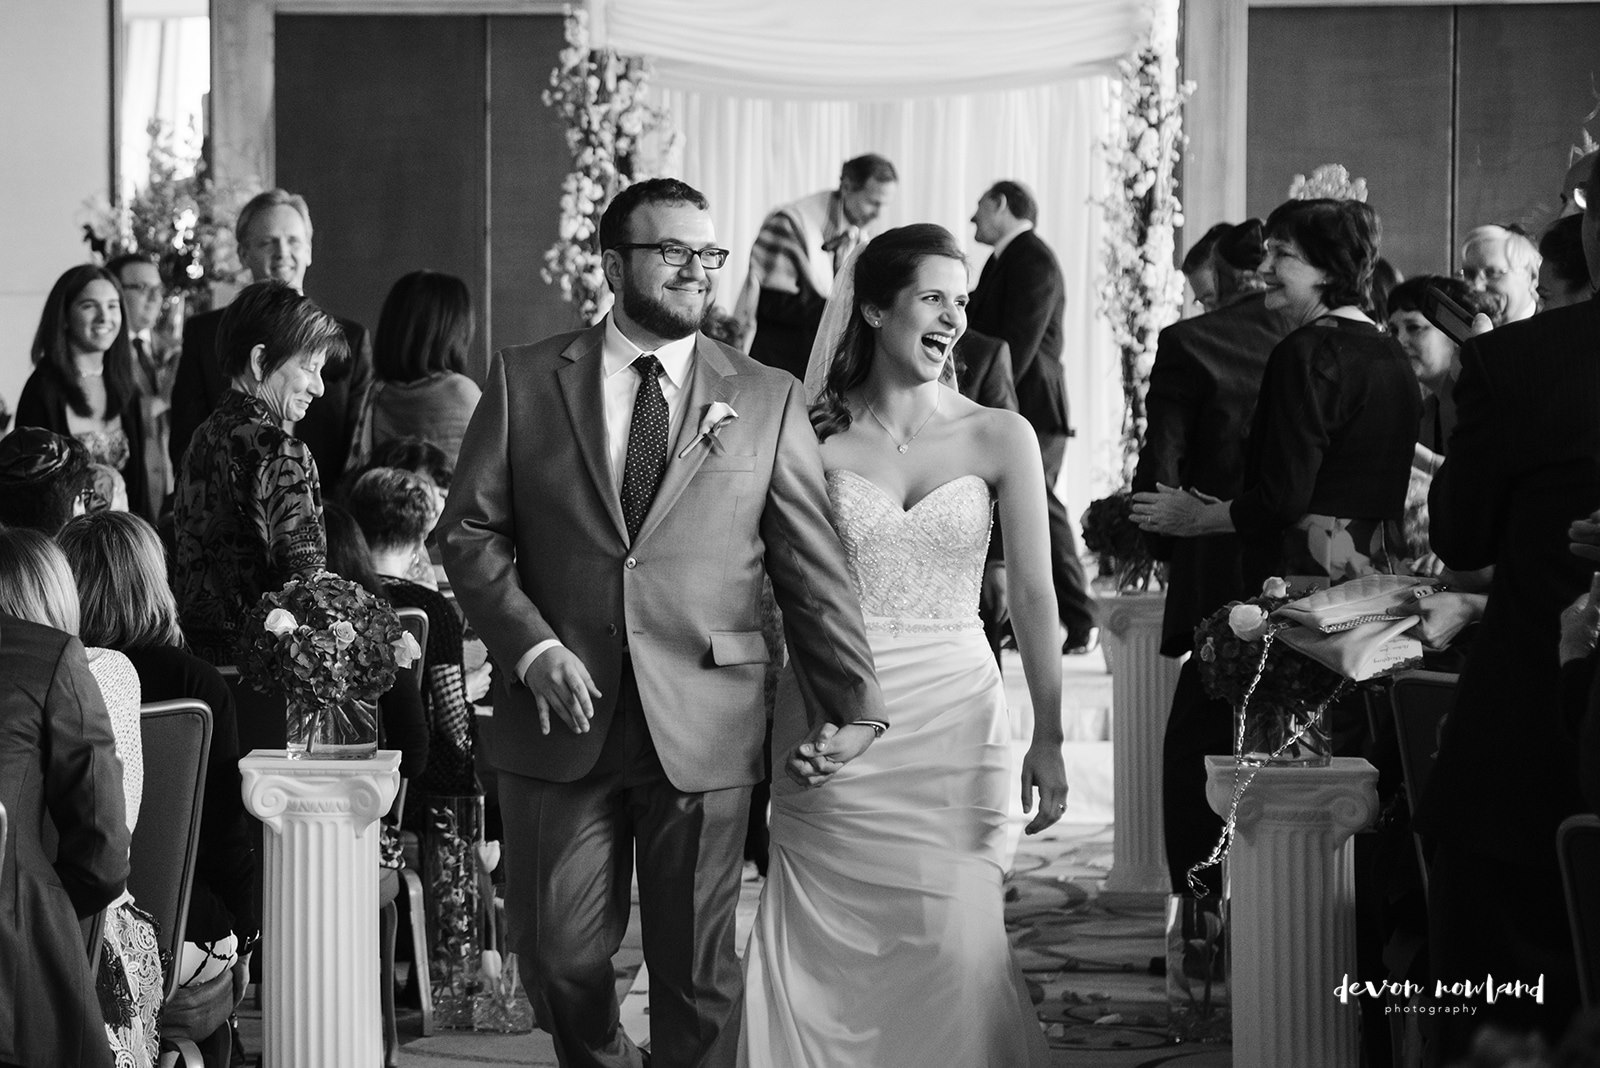 RJ-wedding-Four-Seasons-Baltimore-Devon-Rowland-Photography-2017-May07-4255_bw.jpg